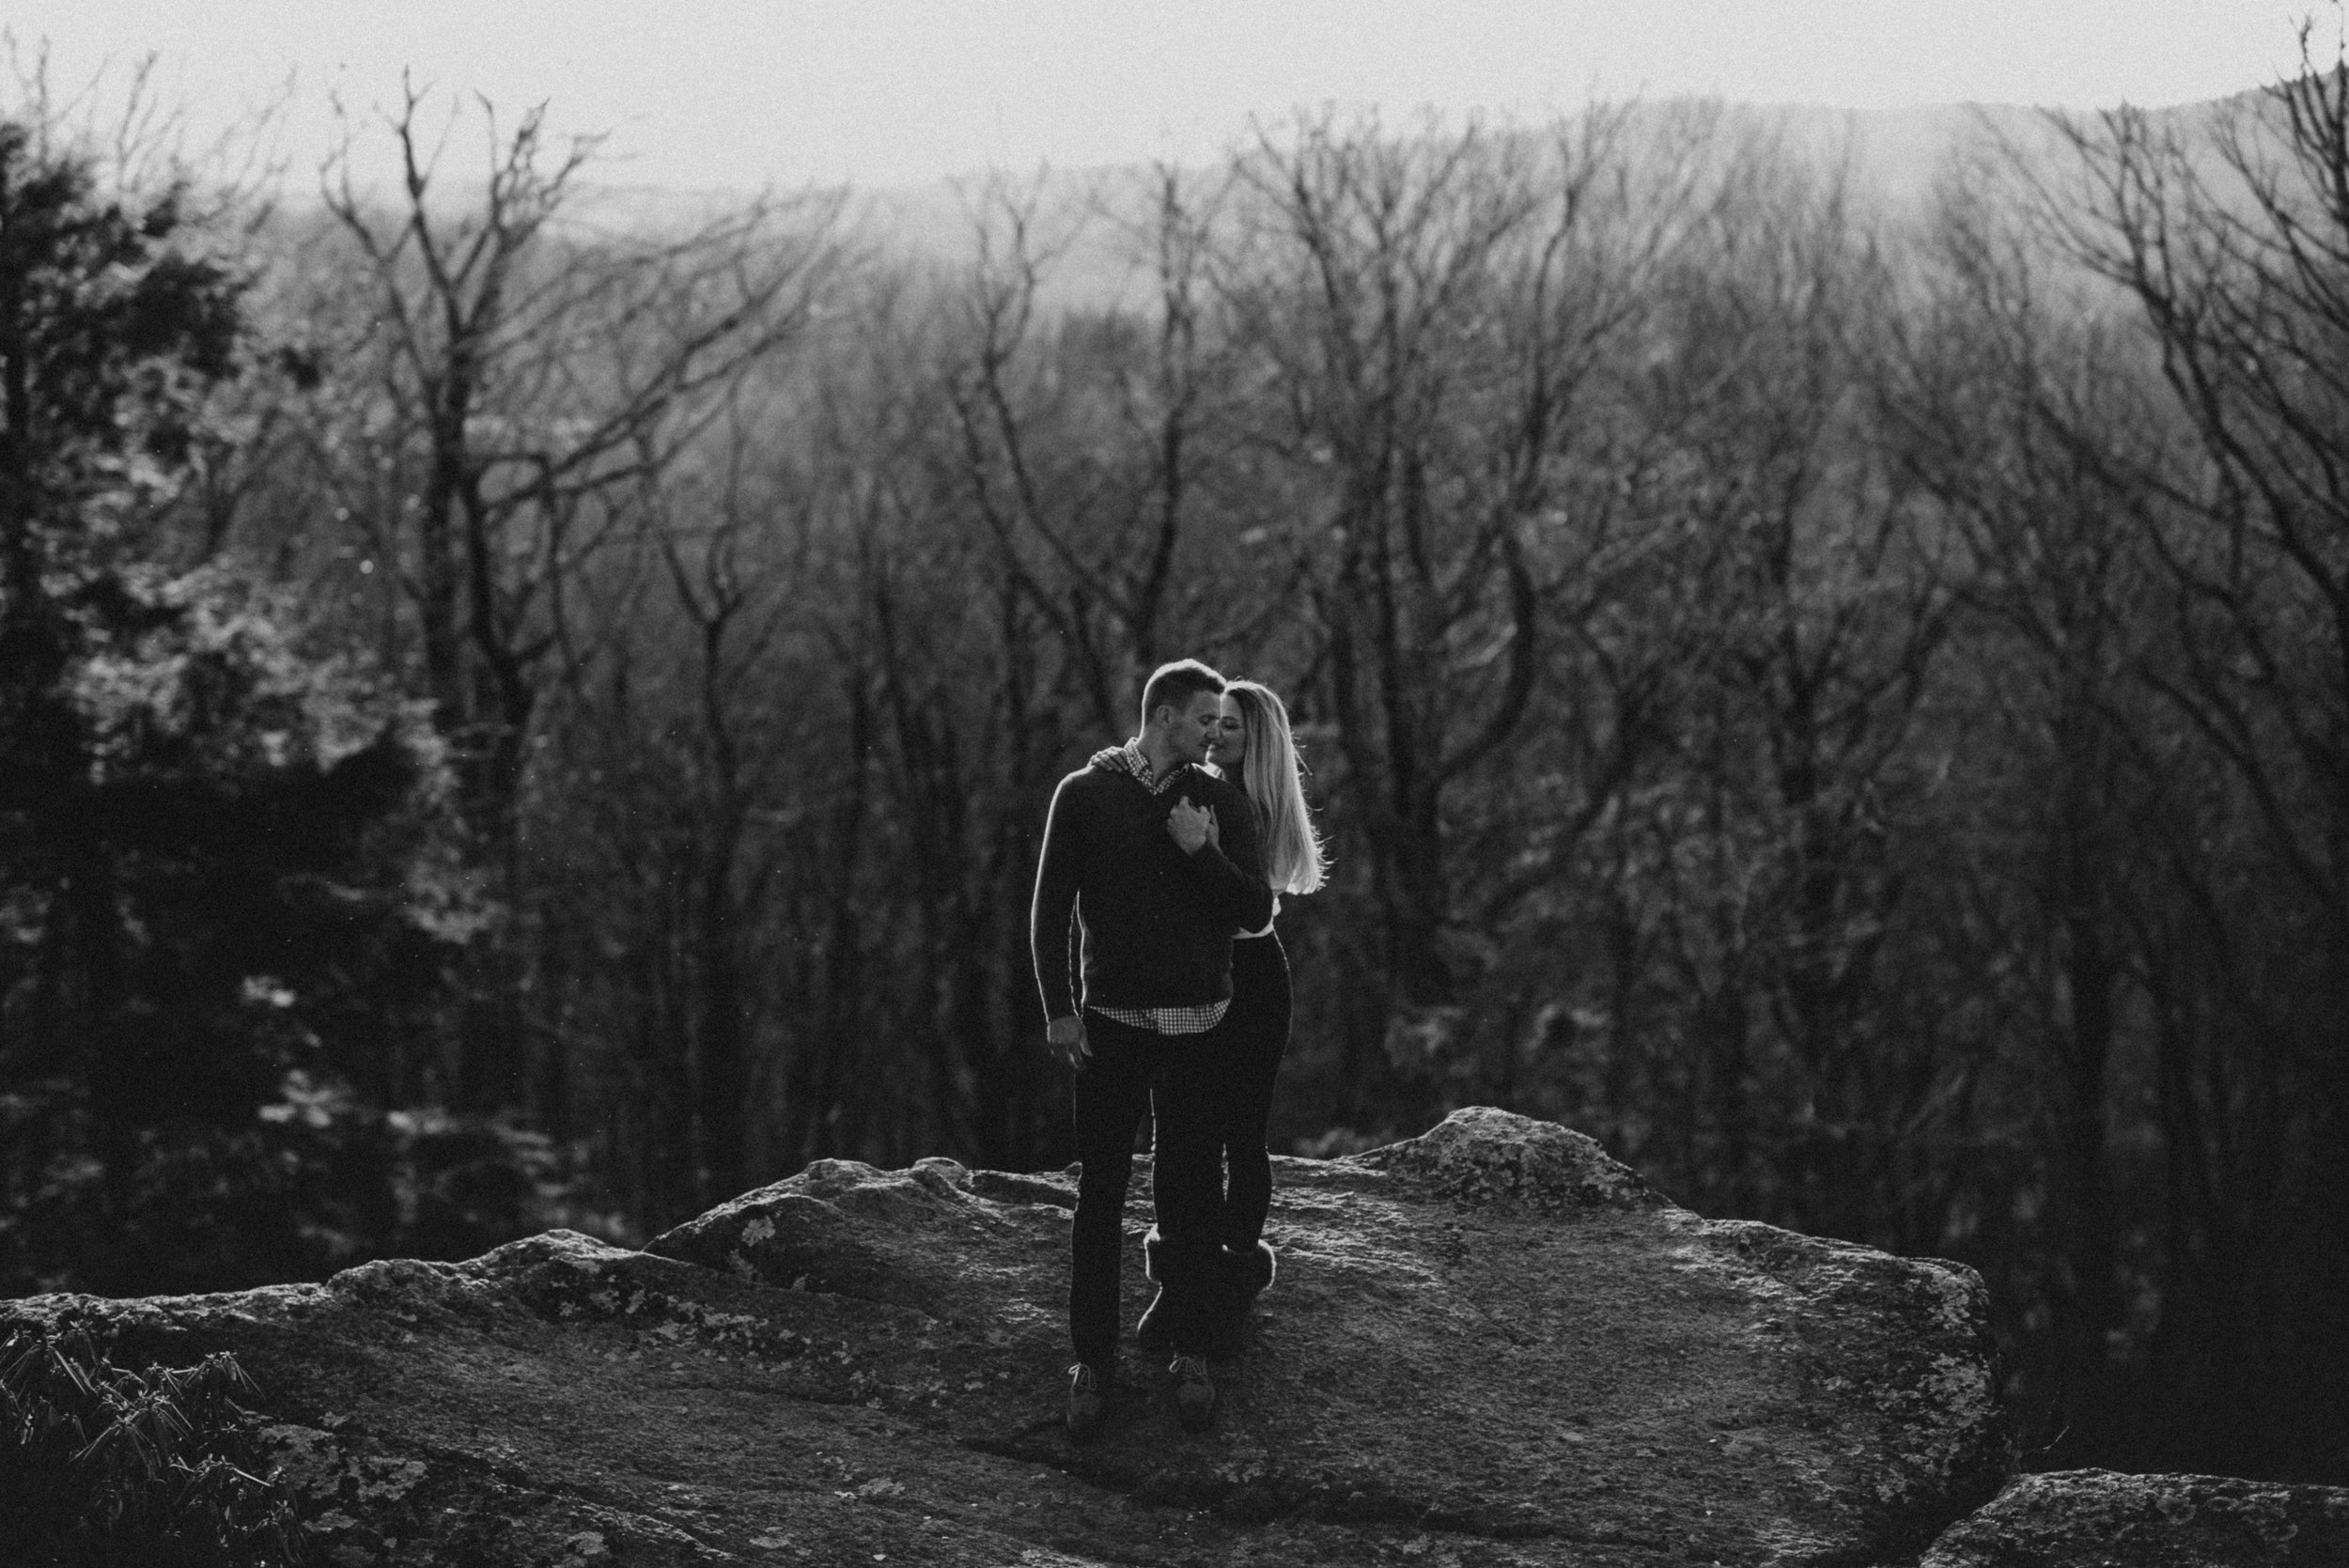 John & Iris - We had an absolute blast with these two up in the mountains of Western North Carolina (Boone & Blowing rock). We started in the town and then made our way to Moses Cone and a cliff spot on the Blue Ridge Parkway. Super thankful to have met these awesome people and to be able to capture their love for each other.